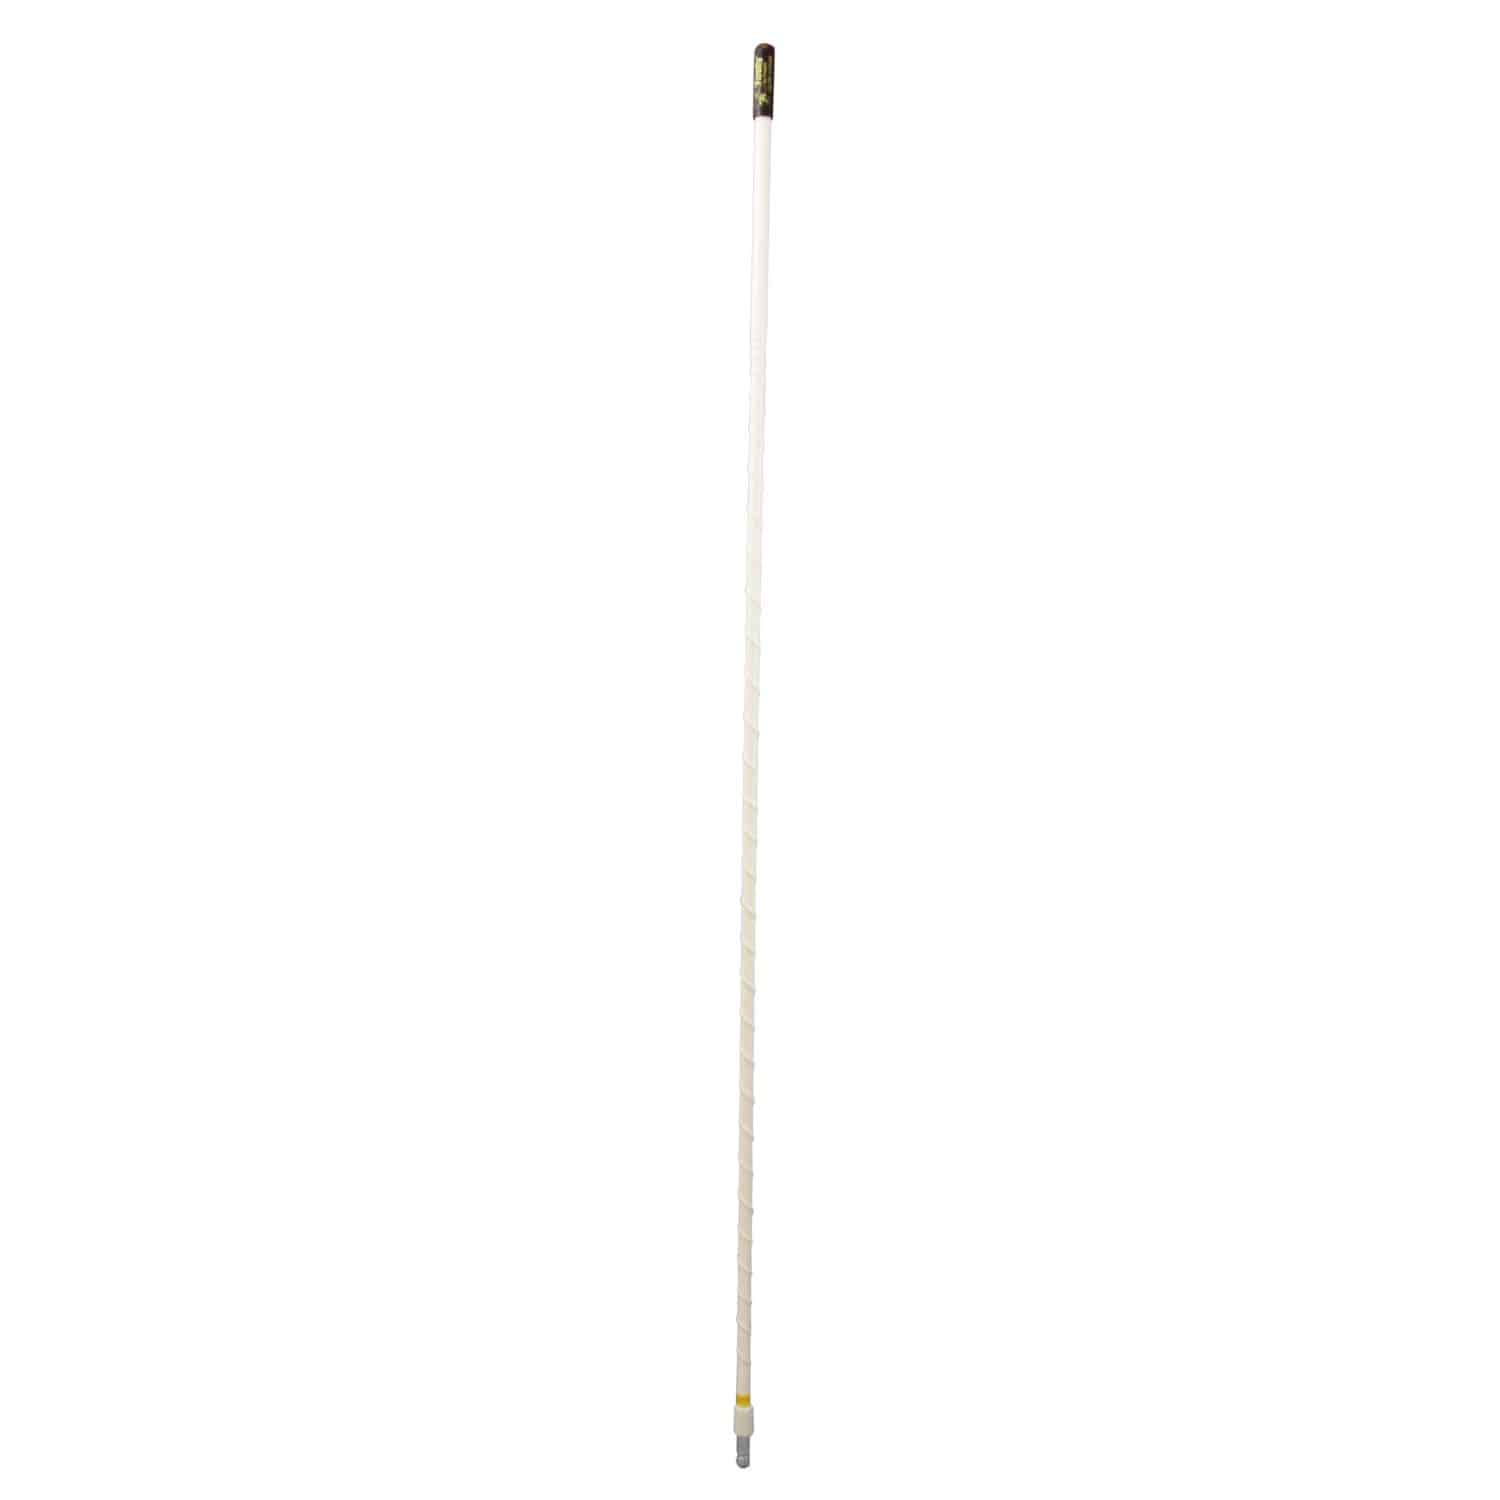 LG3-W - Firestik 3' No Ground Plane Replacement CB Antenna (White)